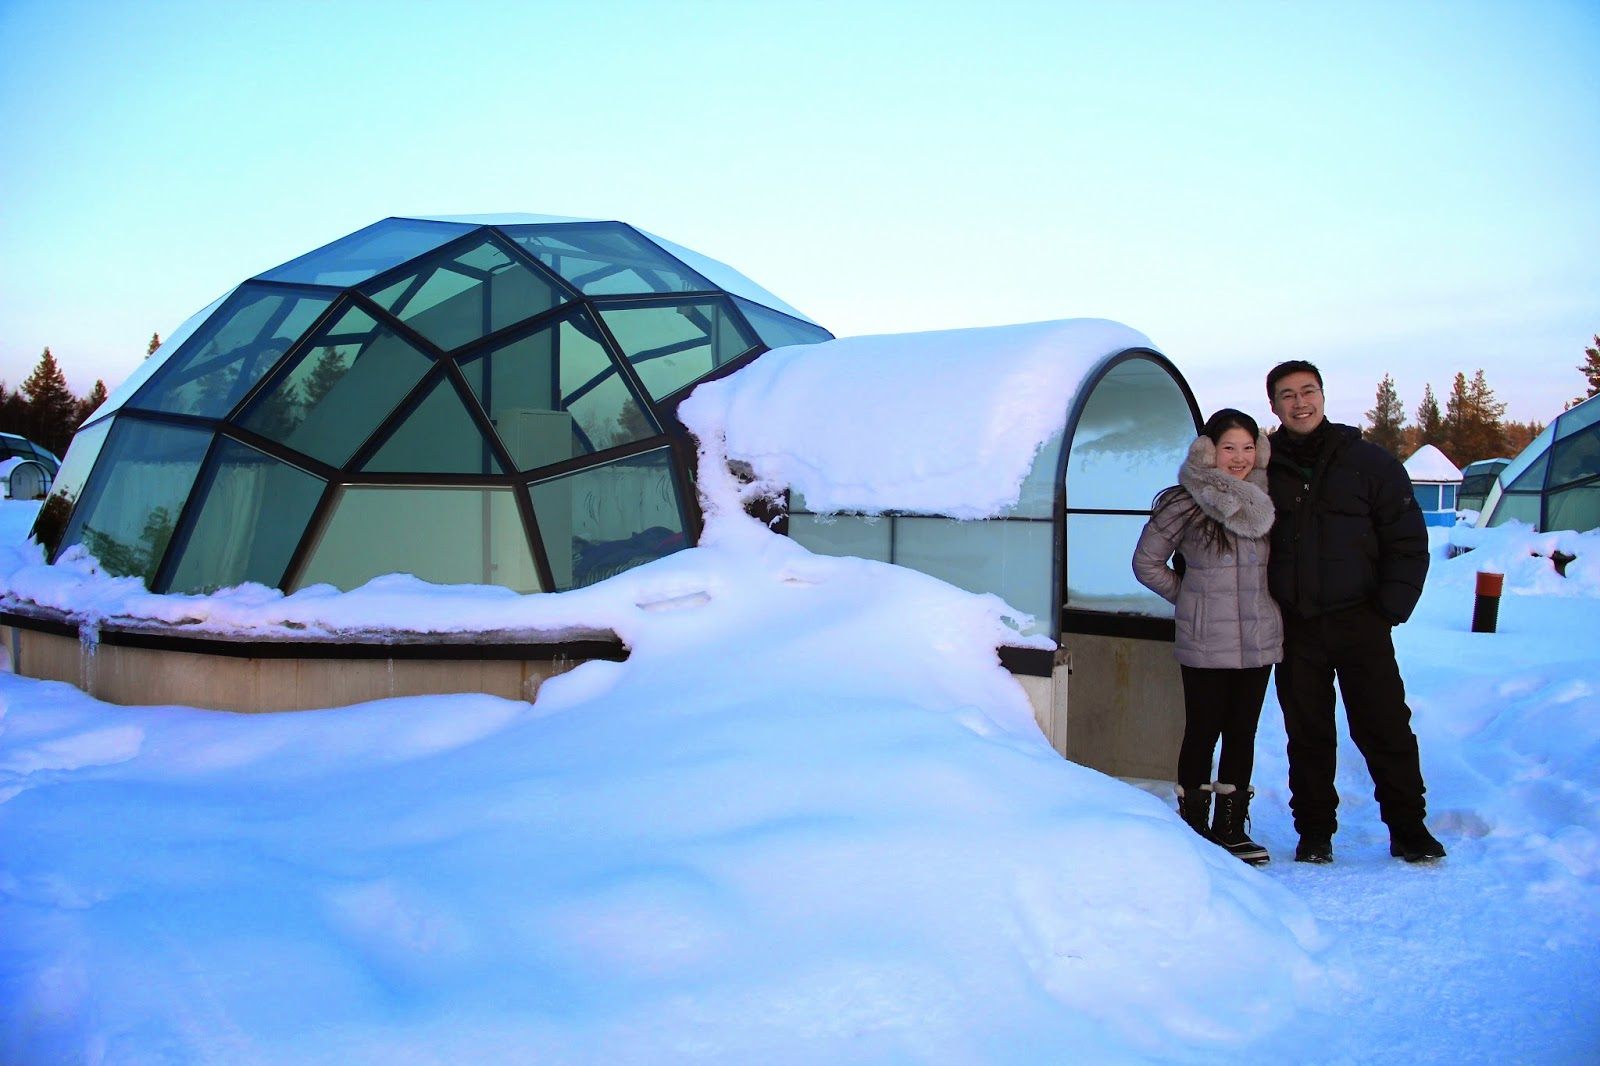 finland hotel igloo the kakslauttanen igloo hotel in finland holidayguru ie jamie amazing. Black Bedroom Furniture Sets. Home Design Ideas